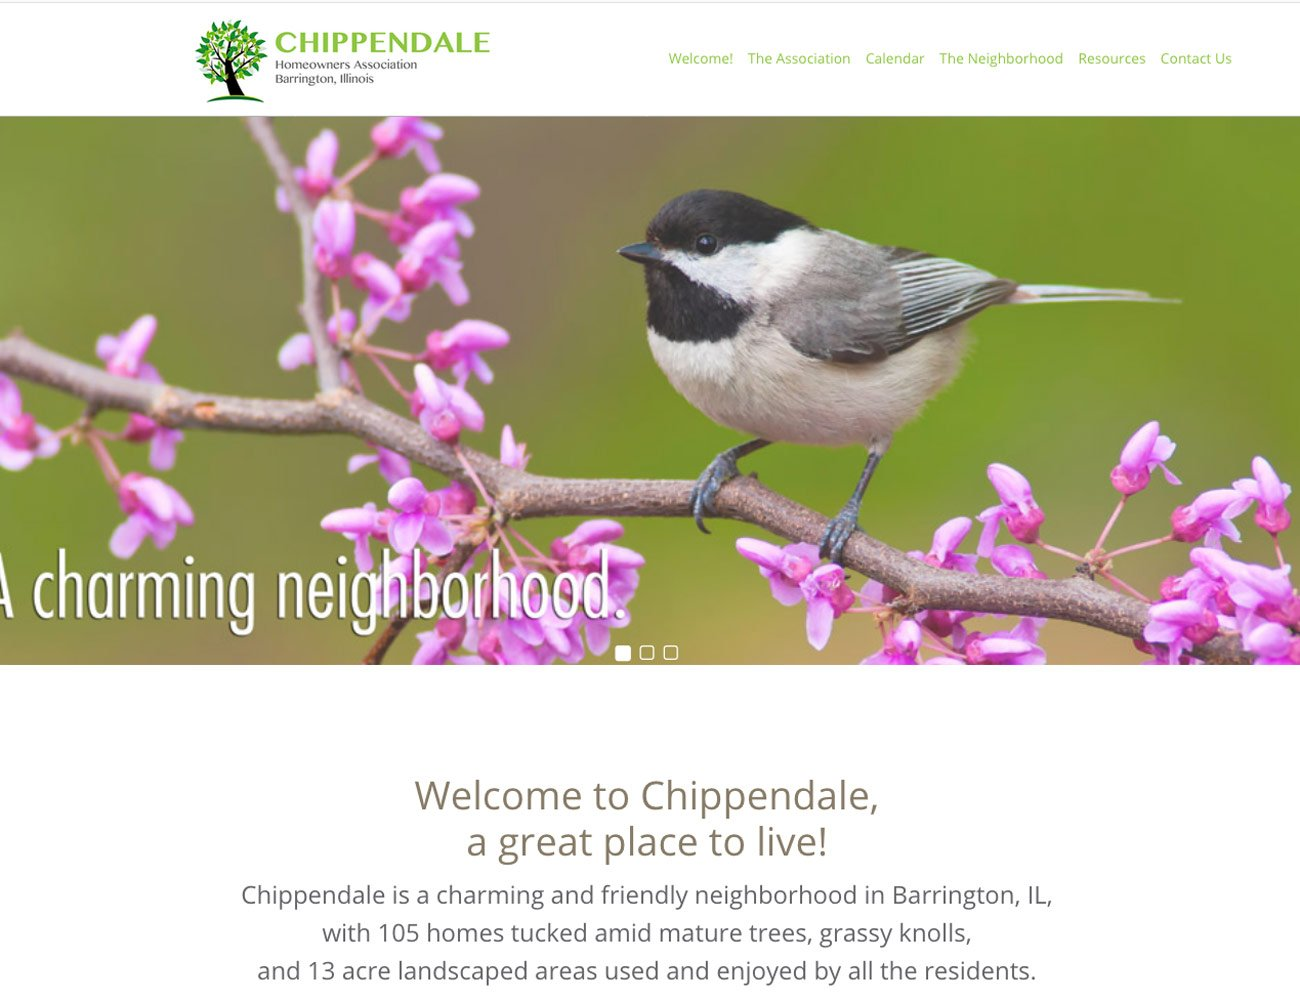 Chippendale-Homeowners-Association